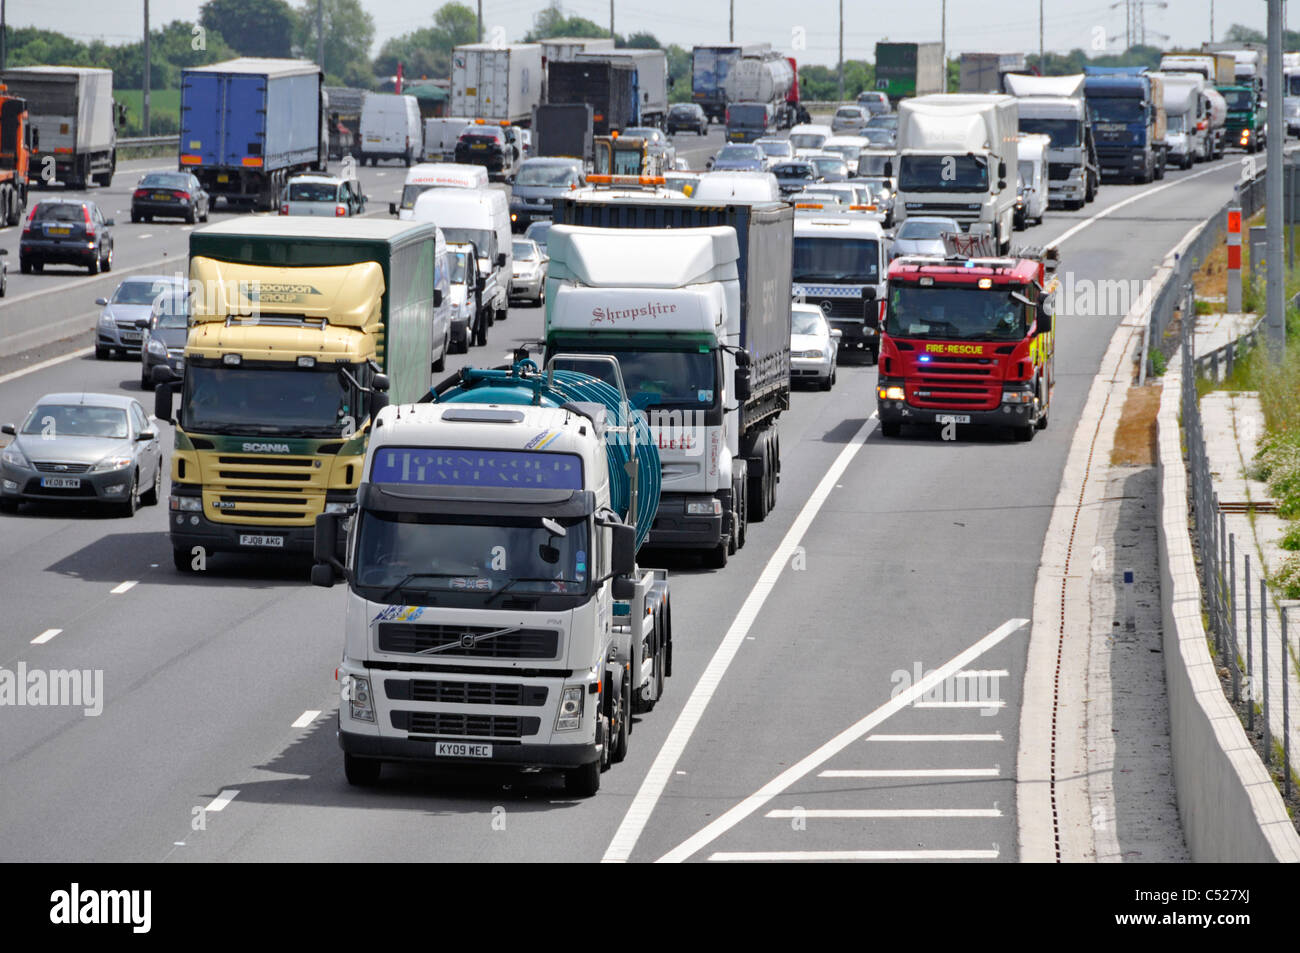 View from above looking down Essex Fire & Rescue fire brigade engine M25 motorway using hard shoulder passing - Stock Image